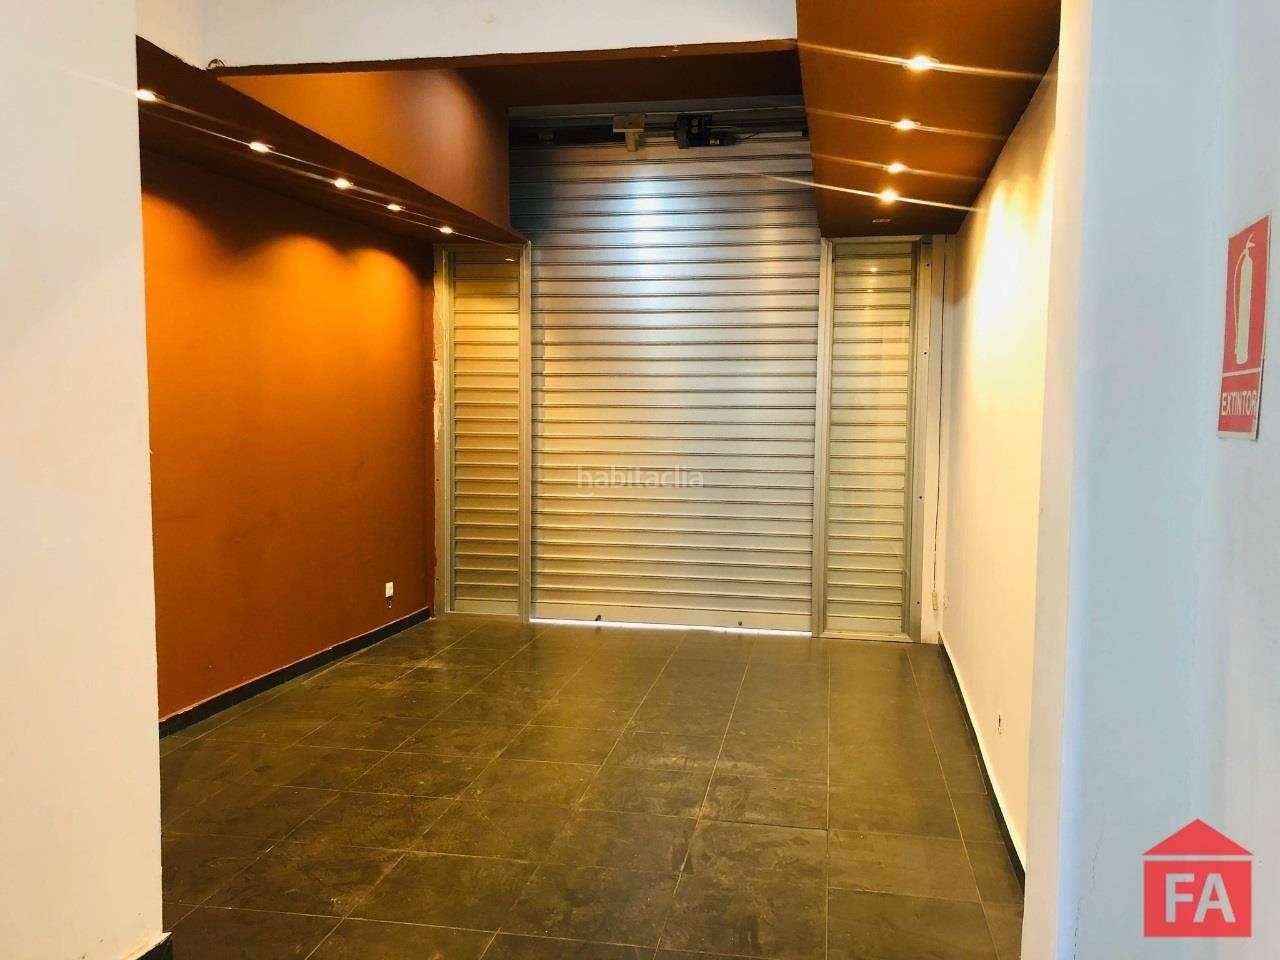 Alquiler Local Comercial en Centre. 8380 vendrell, local 40 m2 en pleno centro